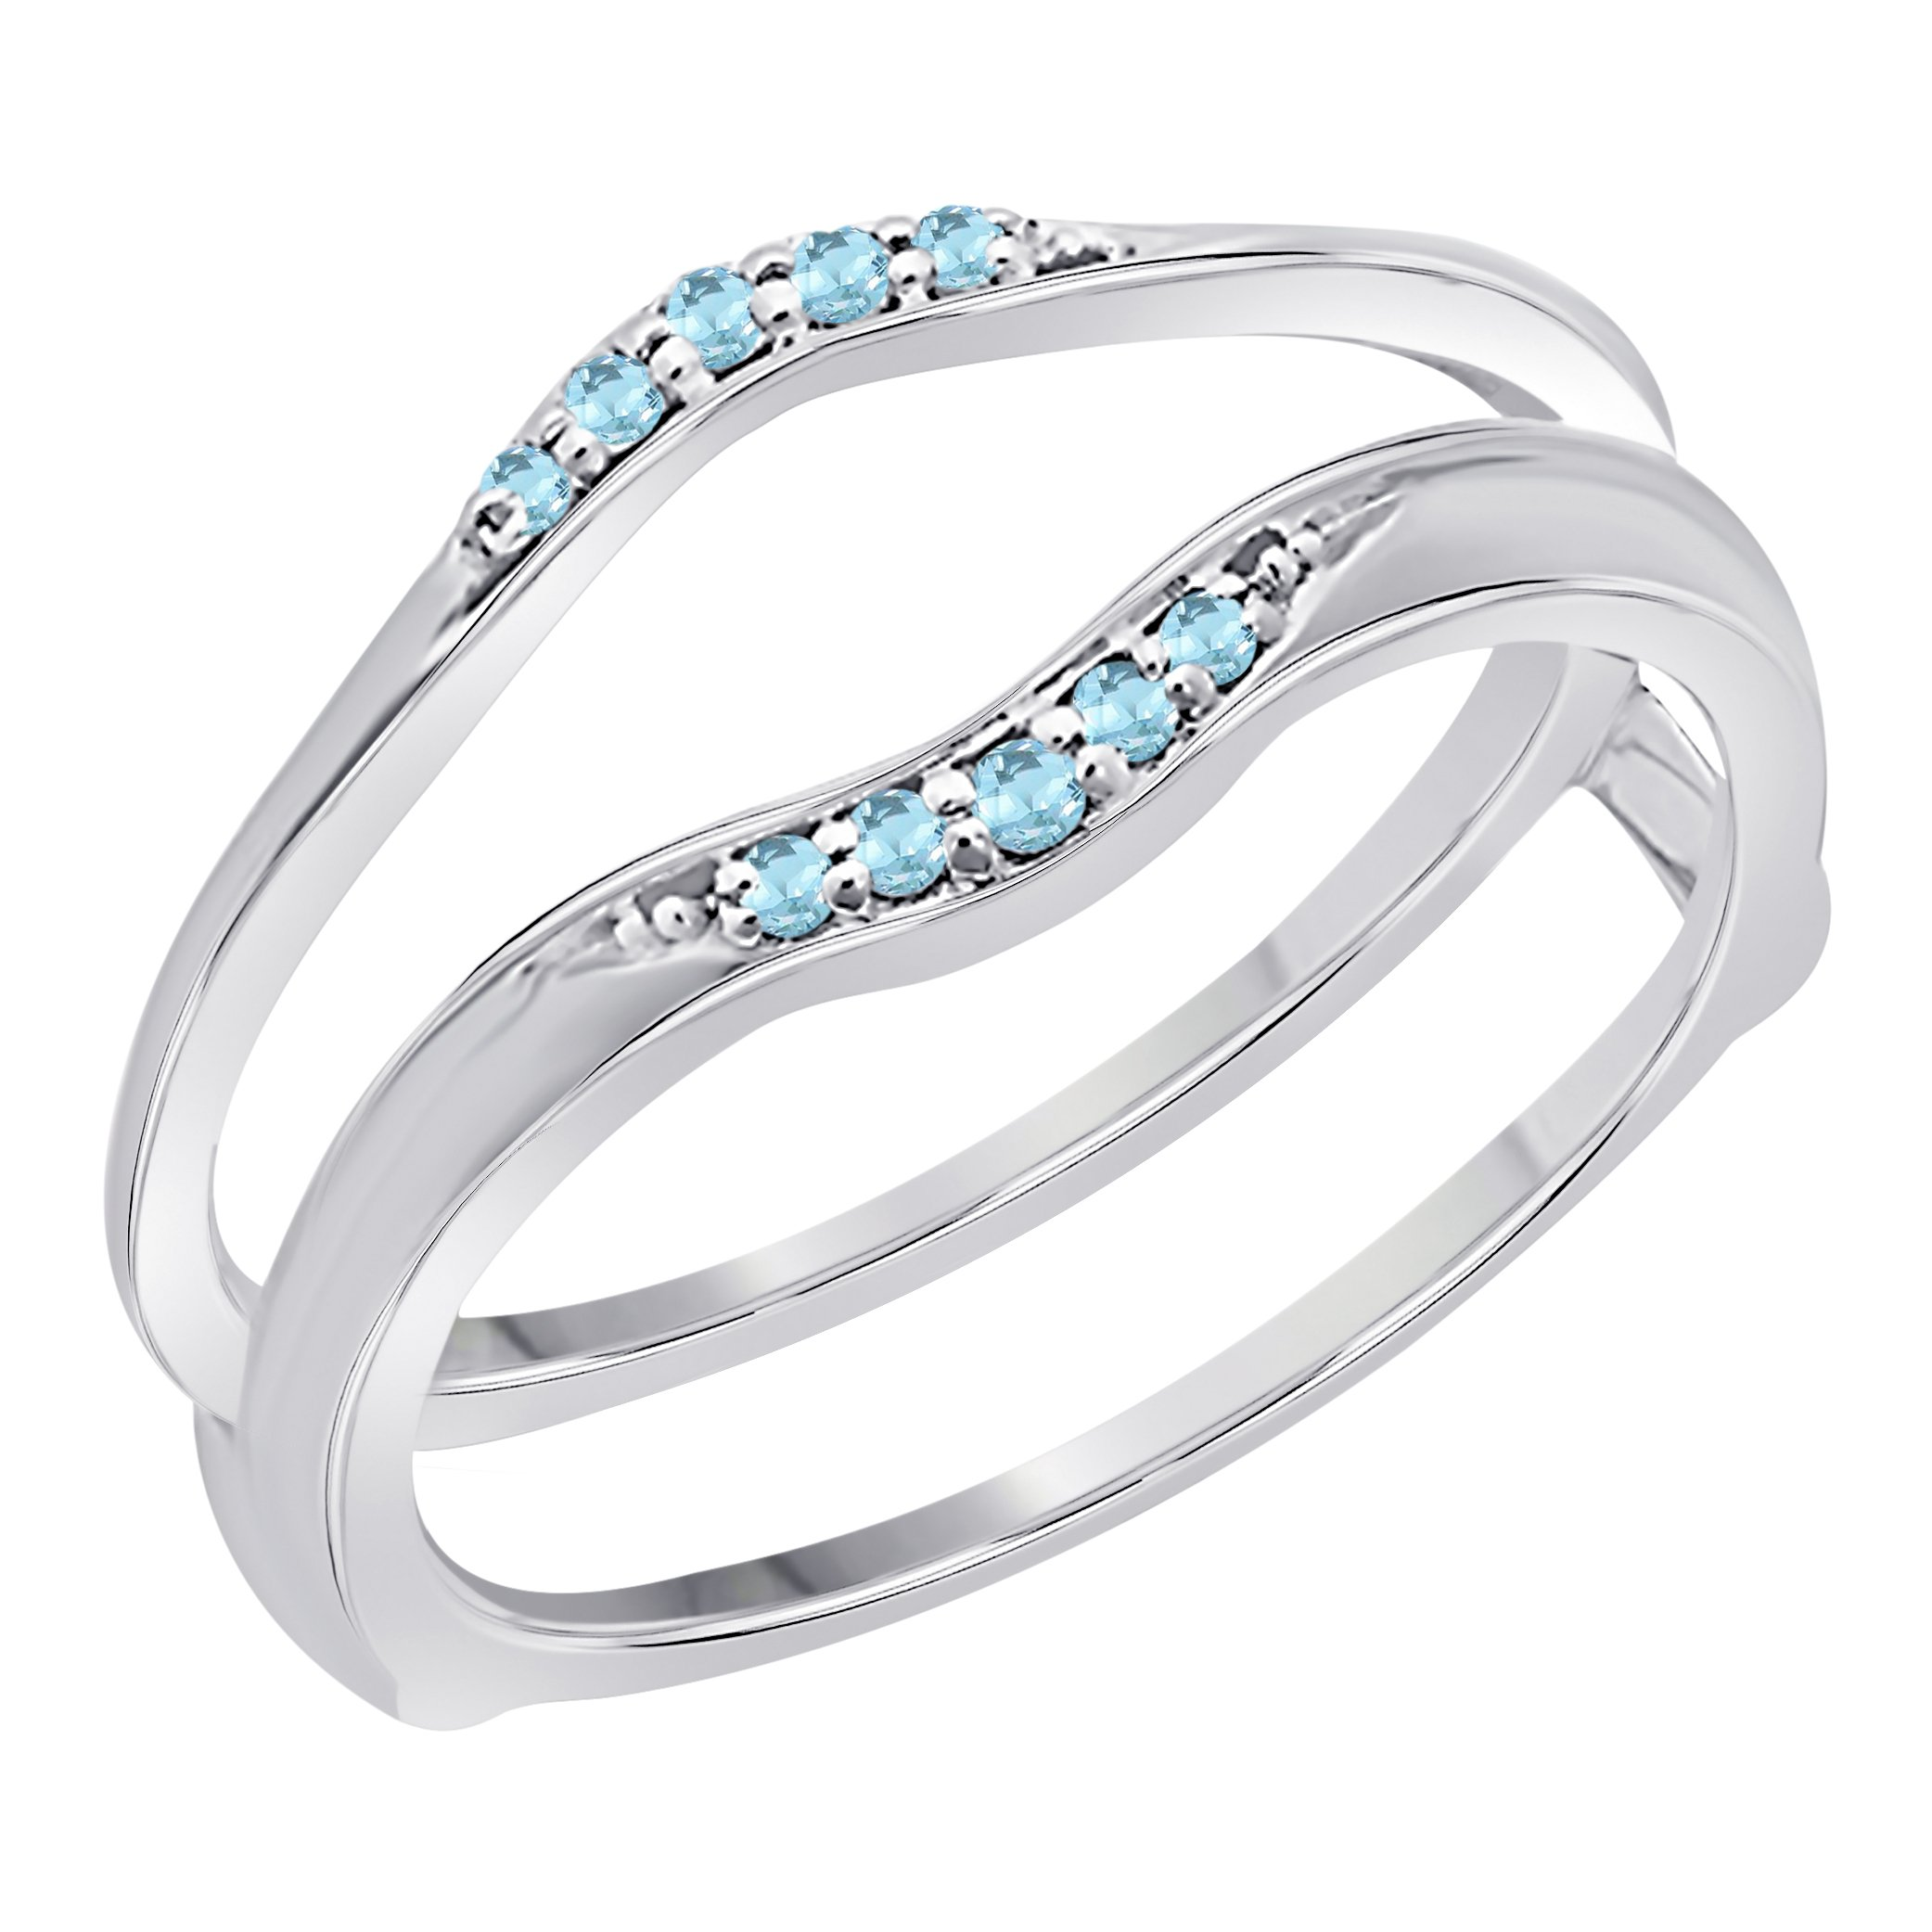 Jewelryhub Sterling Silver Plated Delicate Combination Curved Style Vintage Wedding Ring Guard Enhancer with CZ Blue Topaz (1/6 ct. tw.)